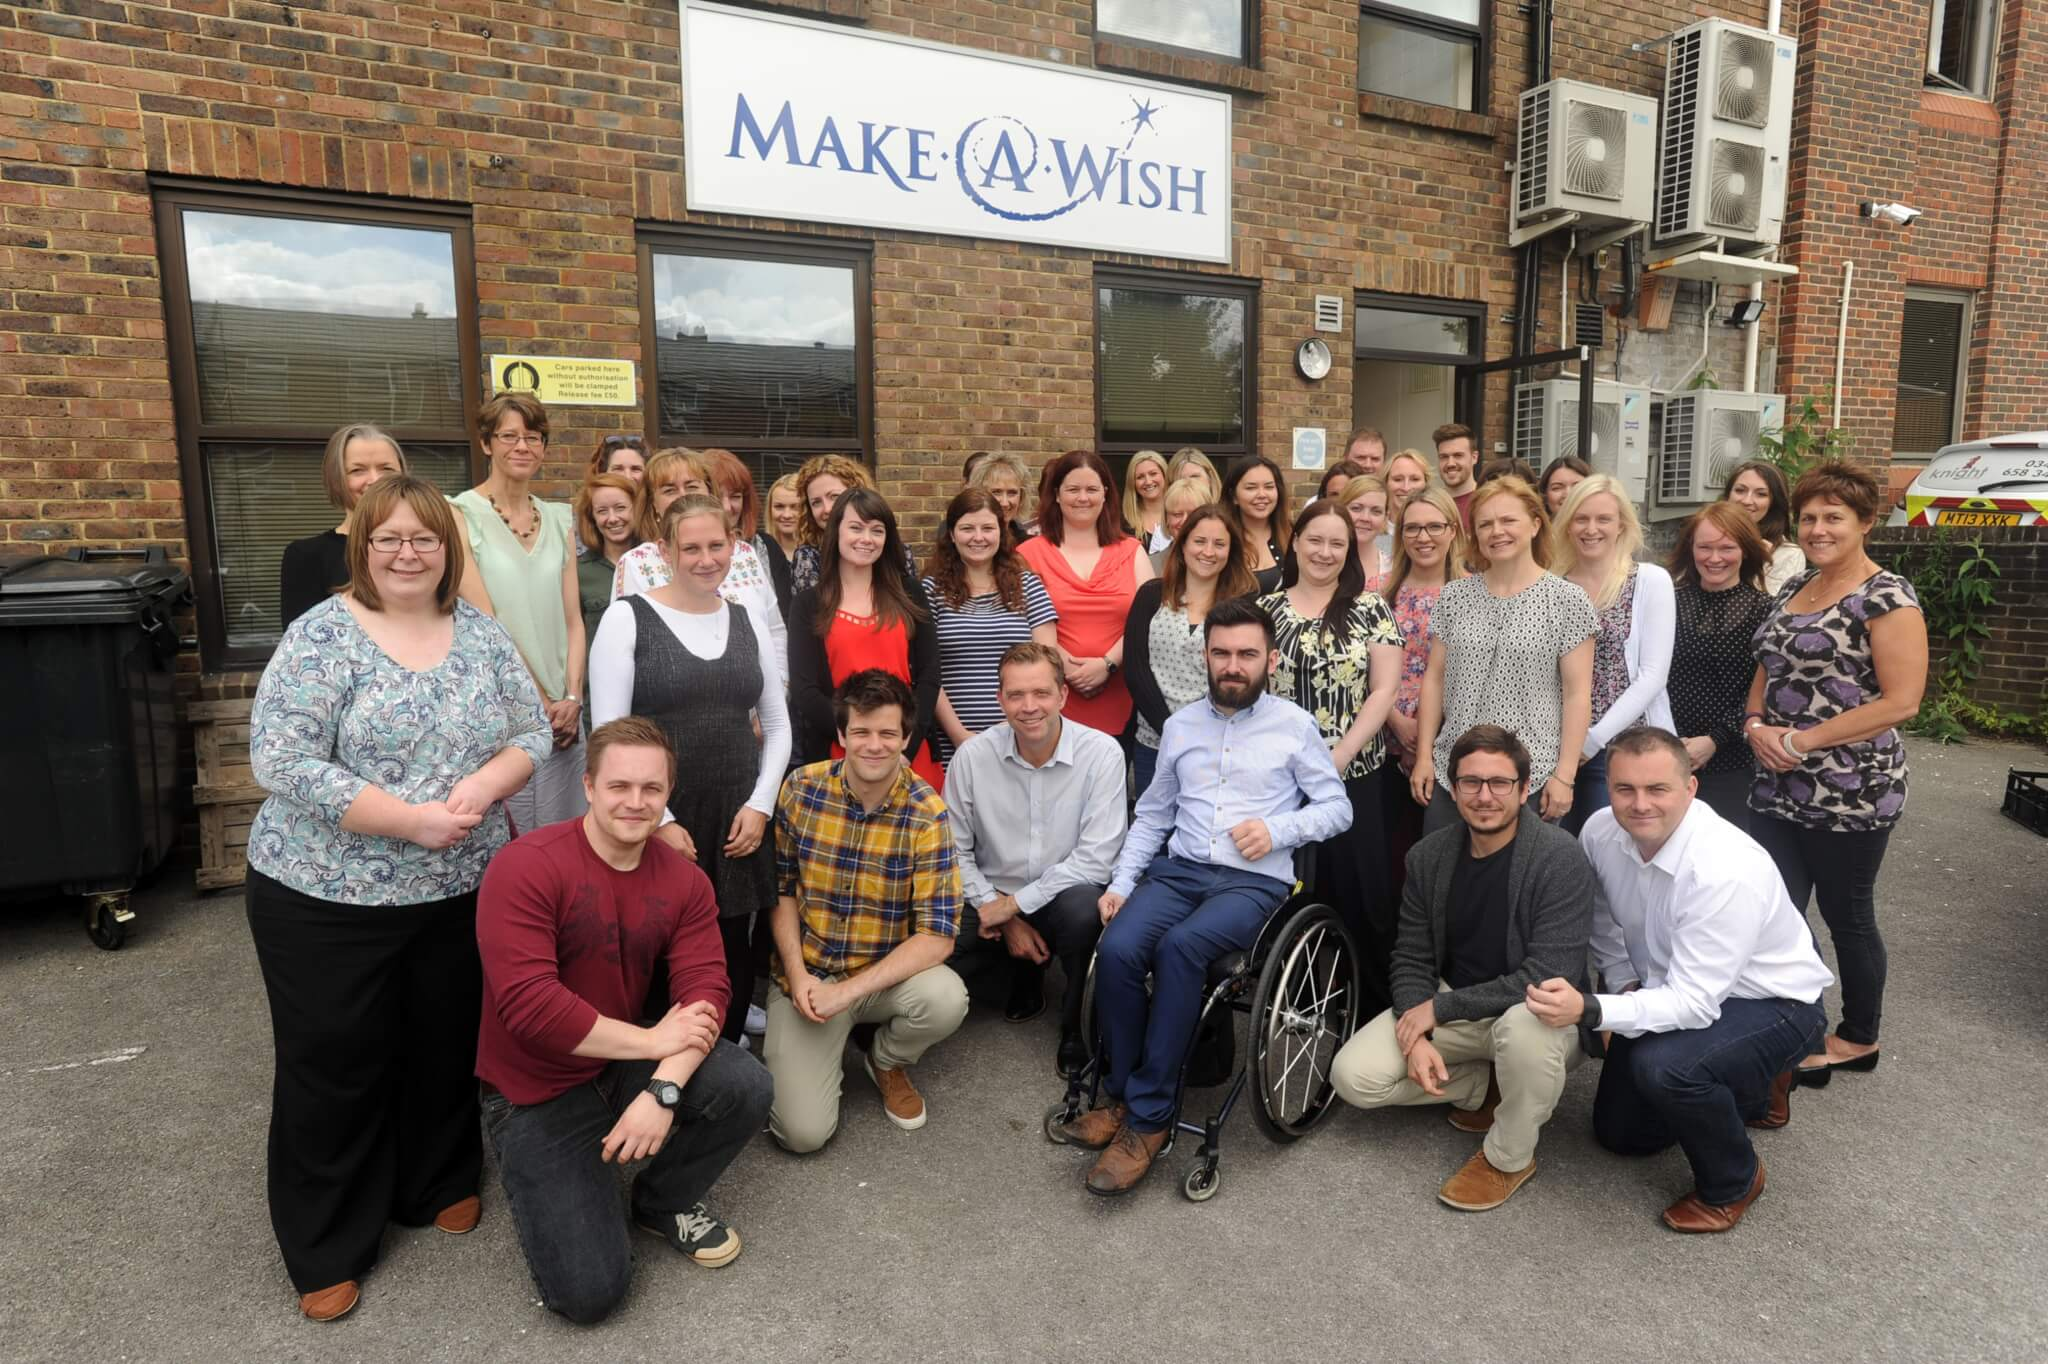 Make A Wish staff on the 30th anniversary outside of the Make A Wish office